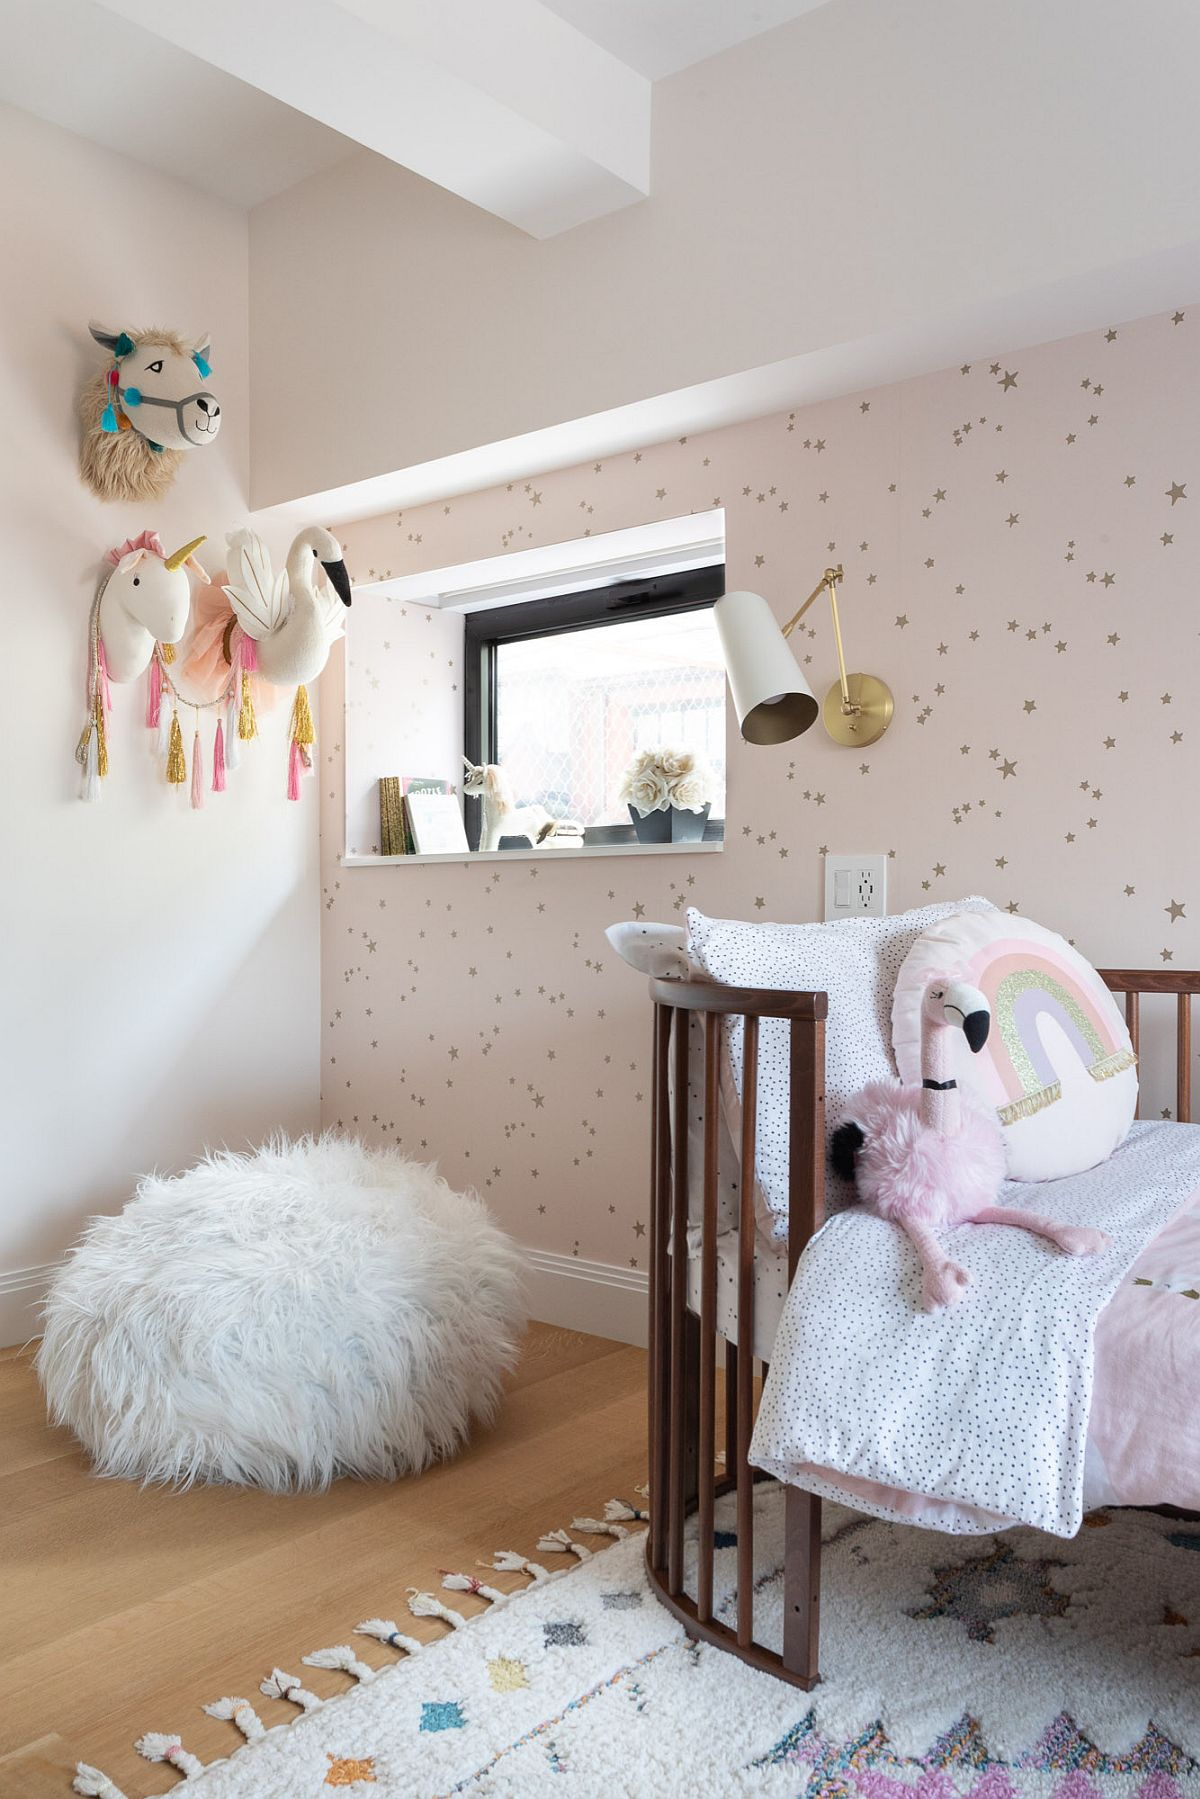 Chic kids' berdoom of New York home with elegant wallpaper and a dash of muted pink